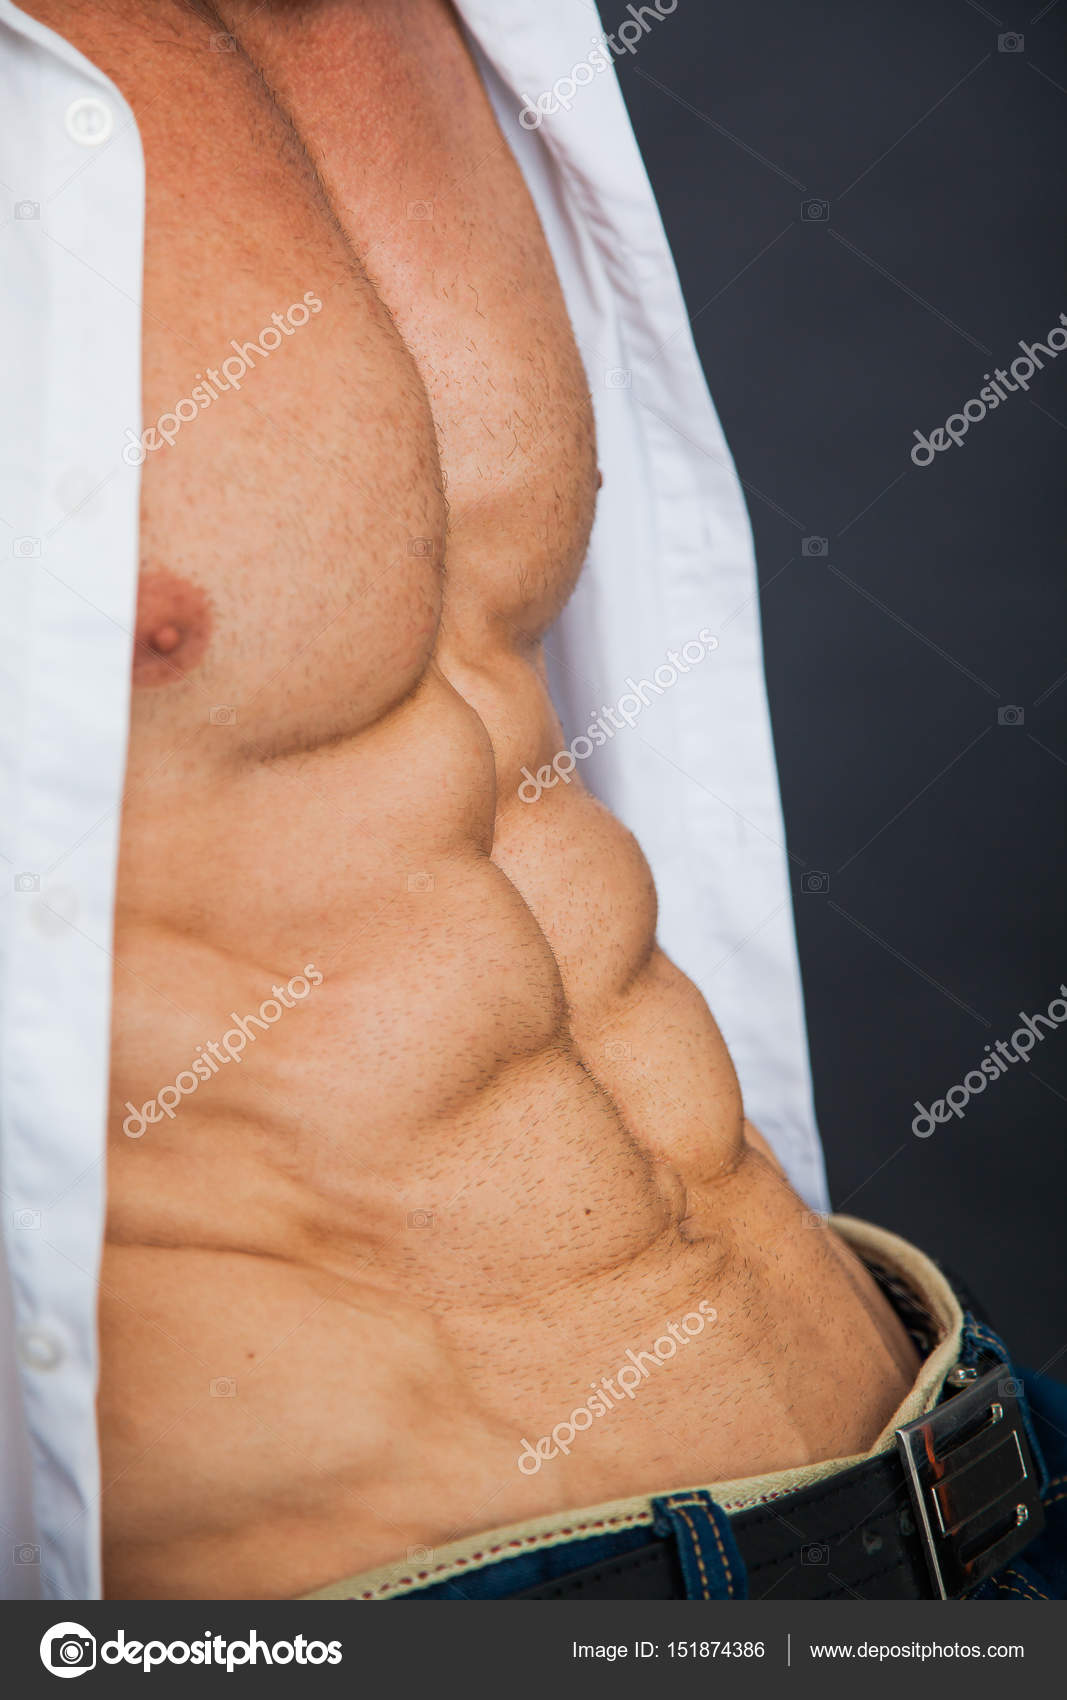 Male Muscular Torso With Six Pack Abs Stock Photo Klyots 151874386